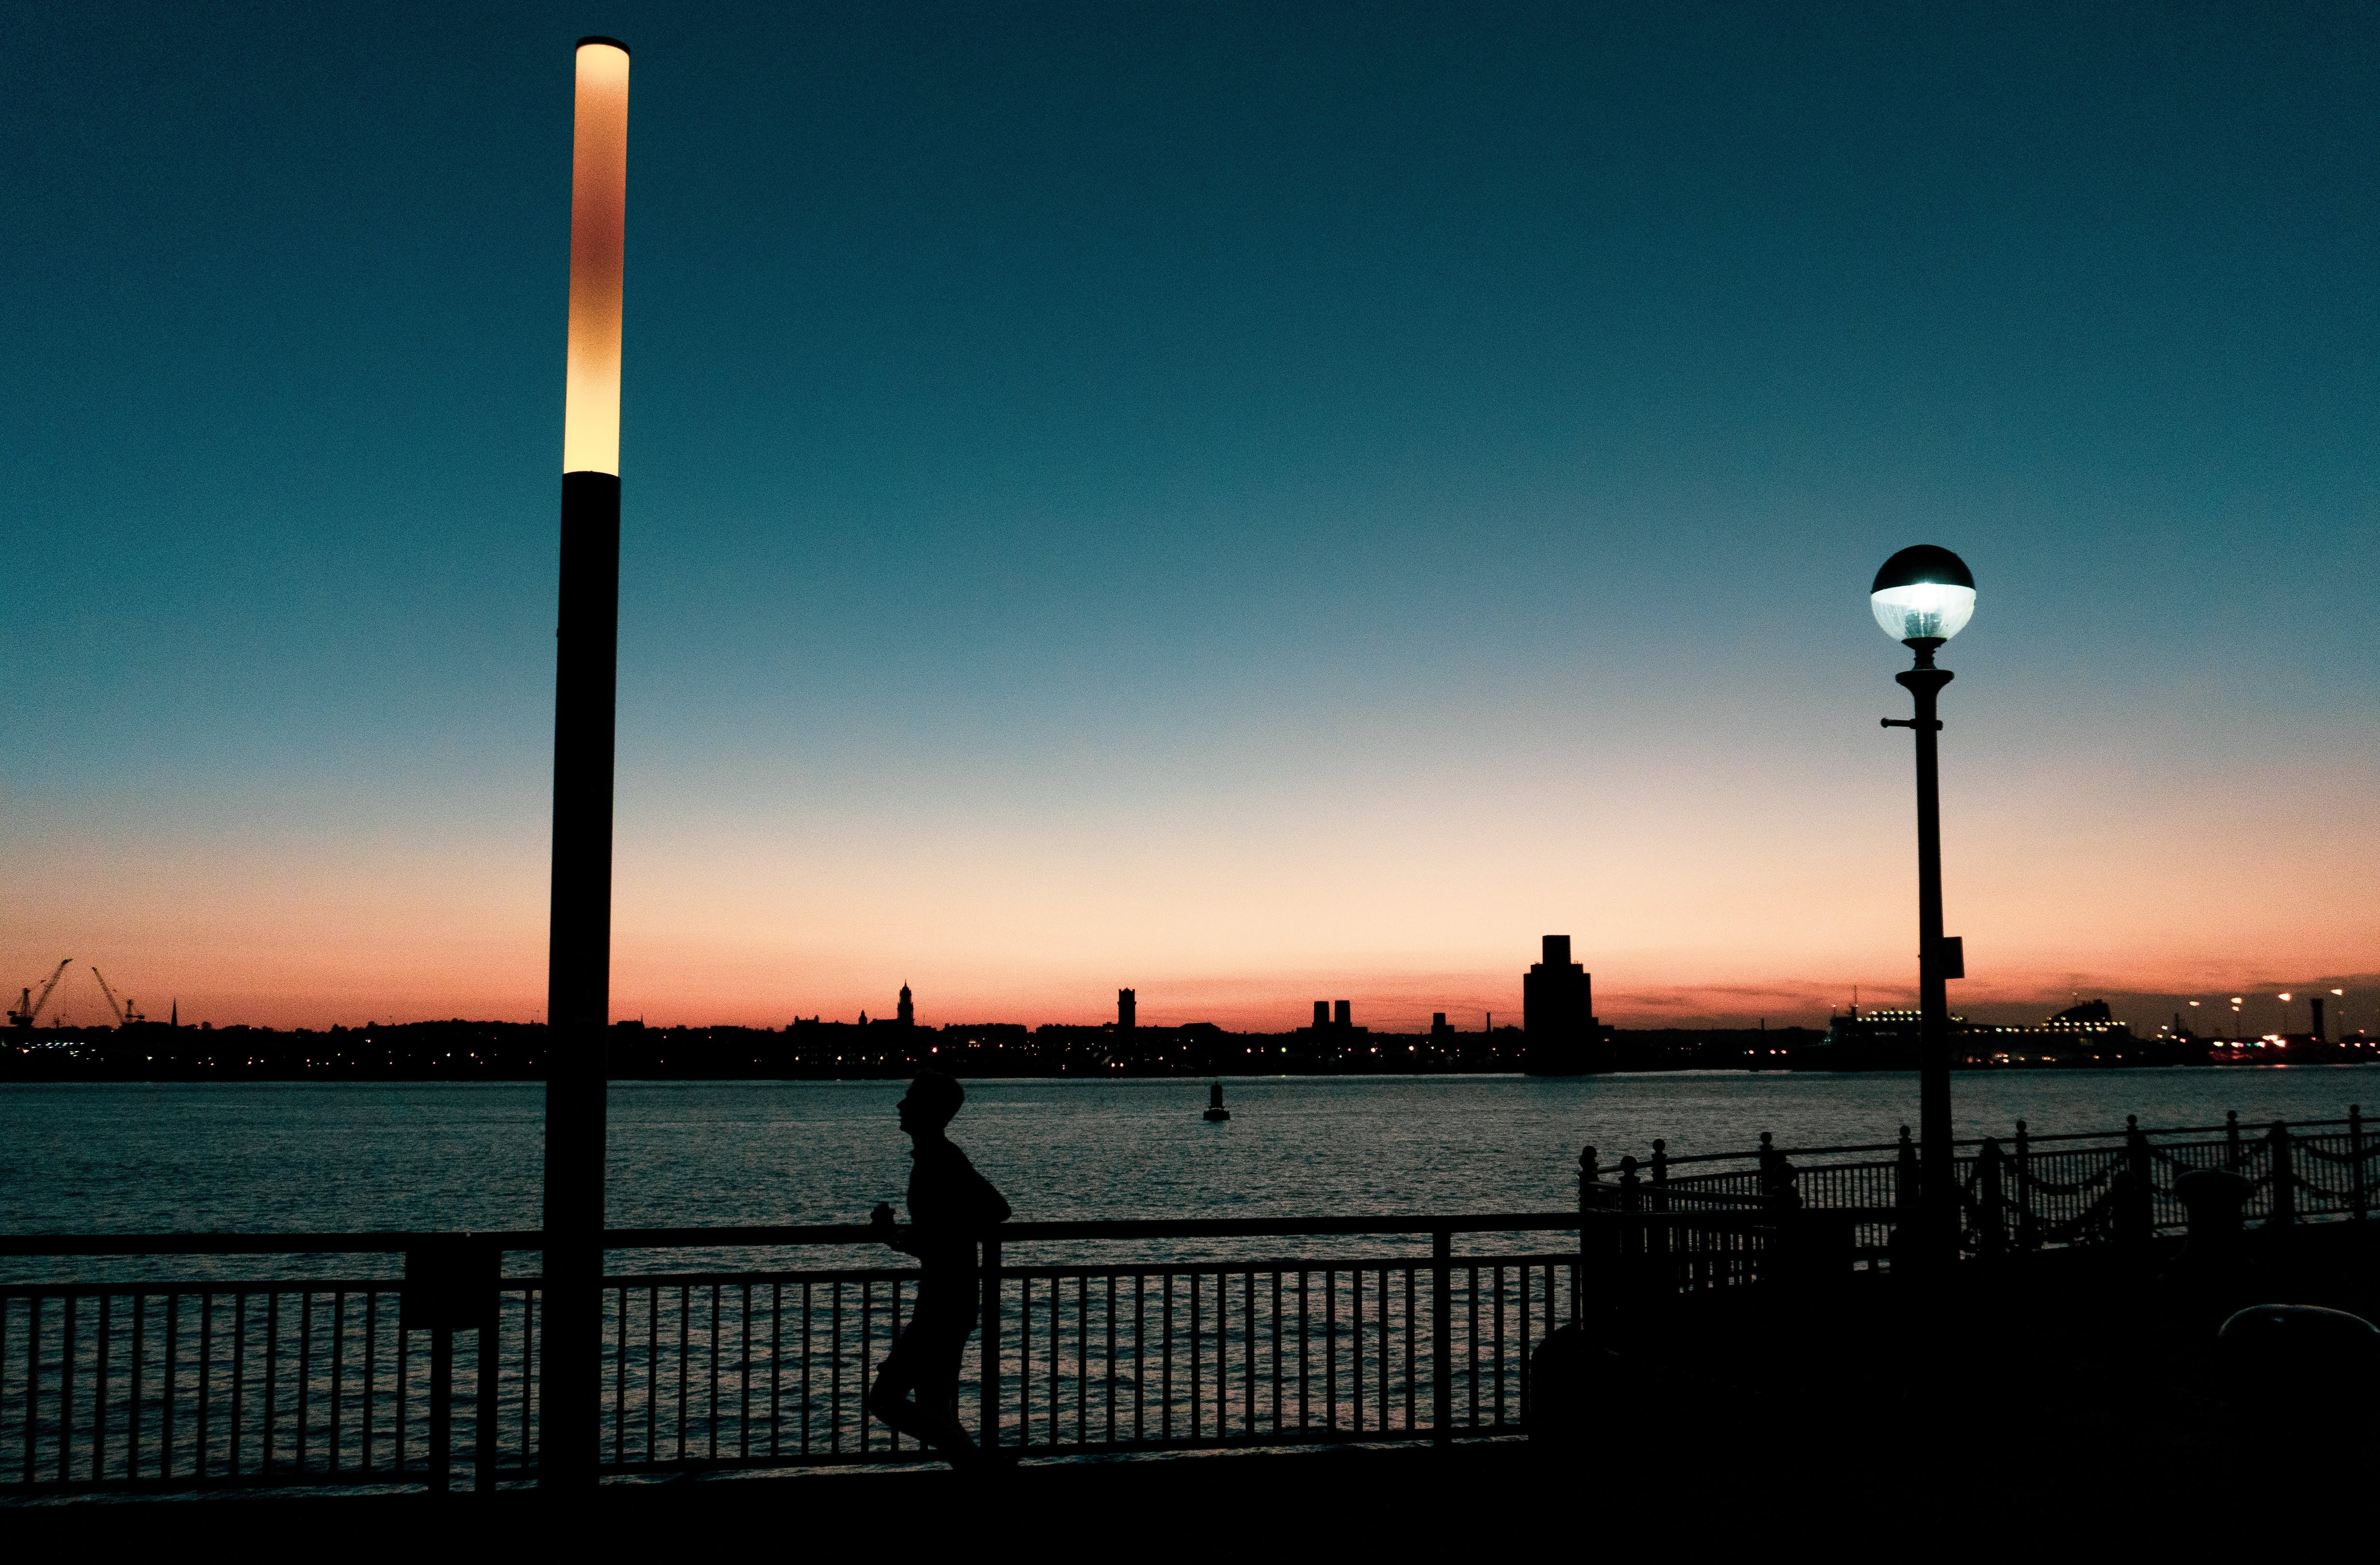 silhouette of man jogging near body of water